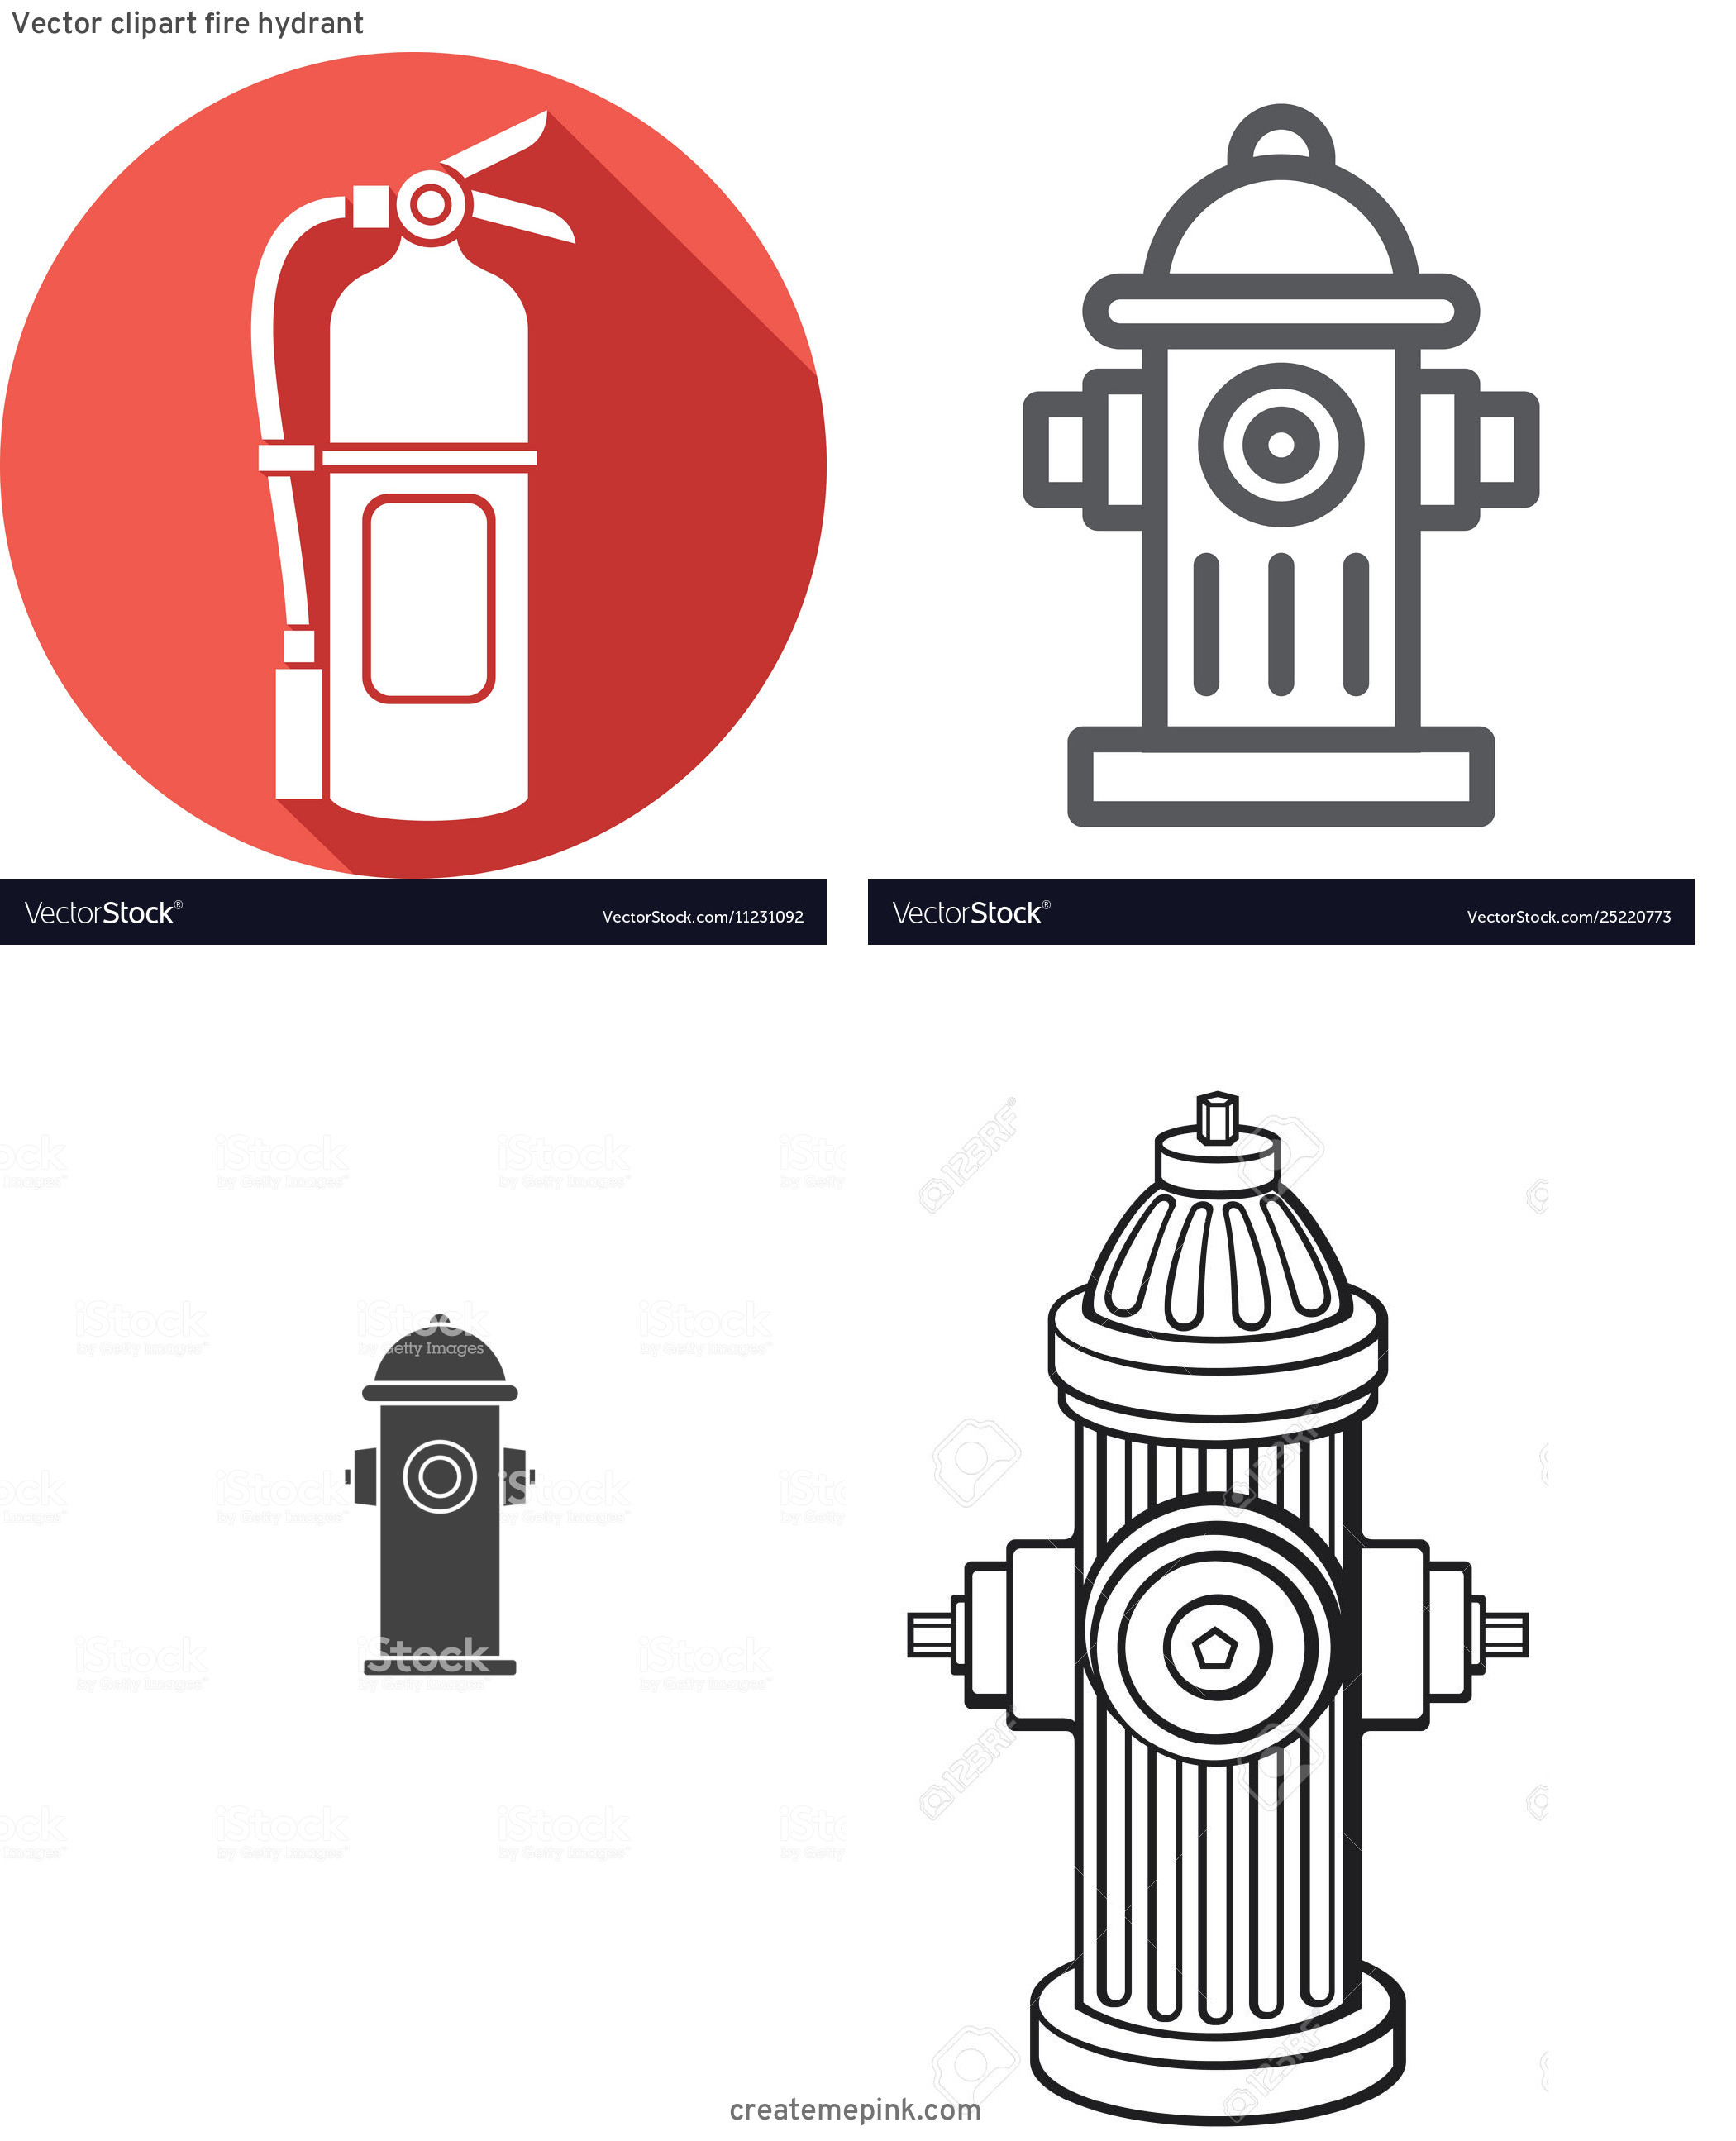 Fire Hydrant Vector Clip Art: Vector Clipart Fire Hydrant